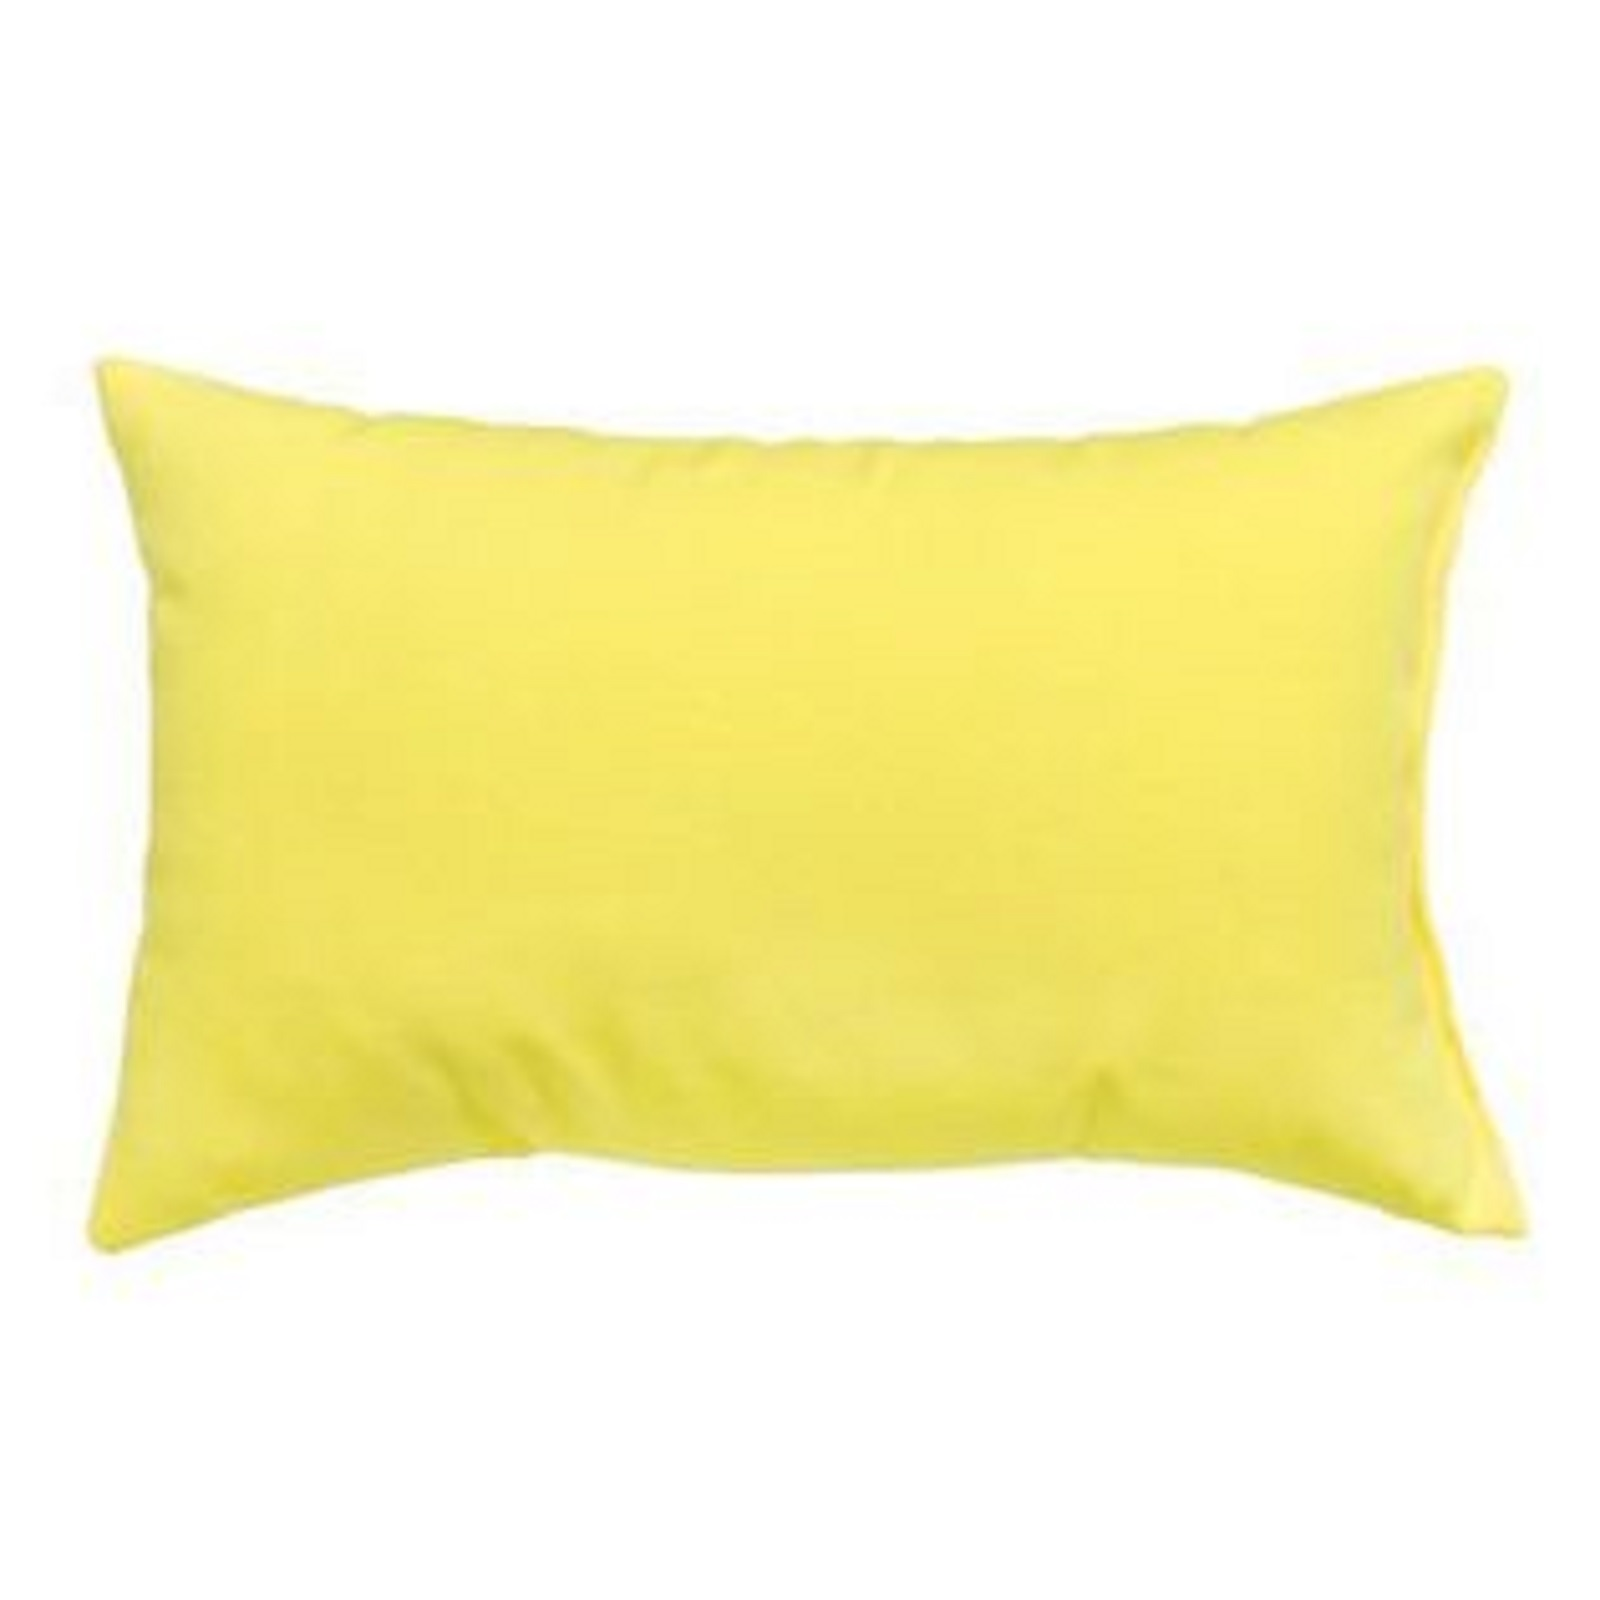 Greendale Home Fashions Rectangle Outdoor Accent Pillows, Set of Two, Sunbeam